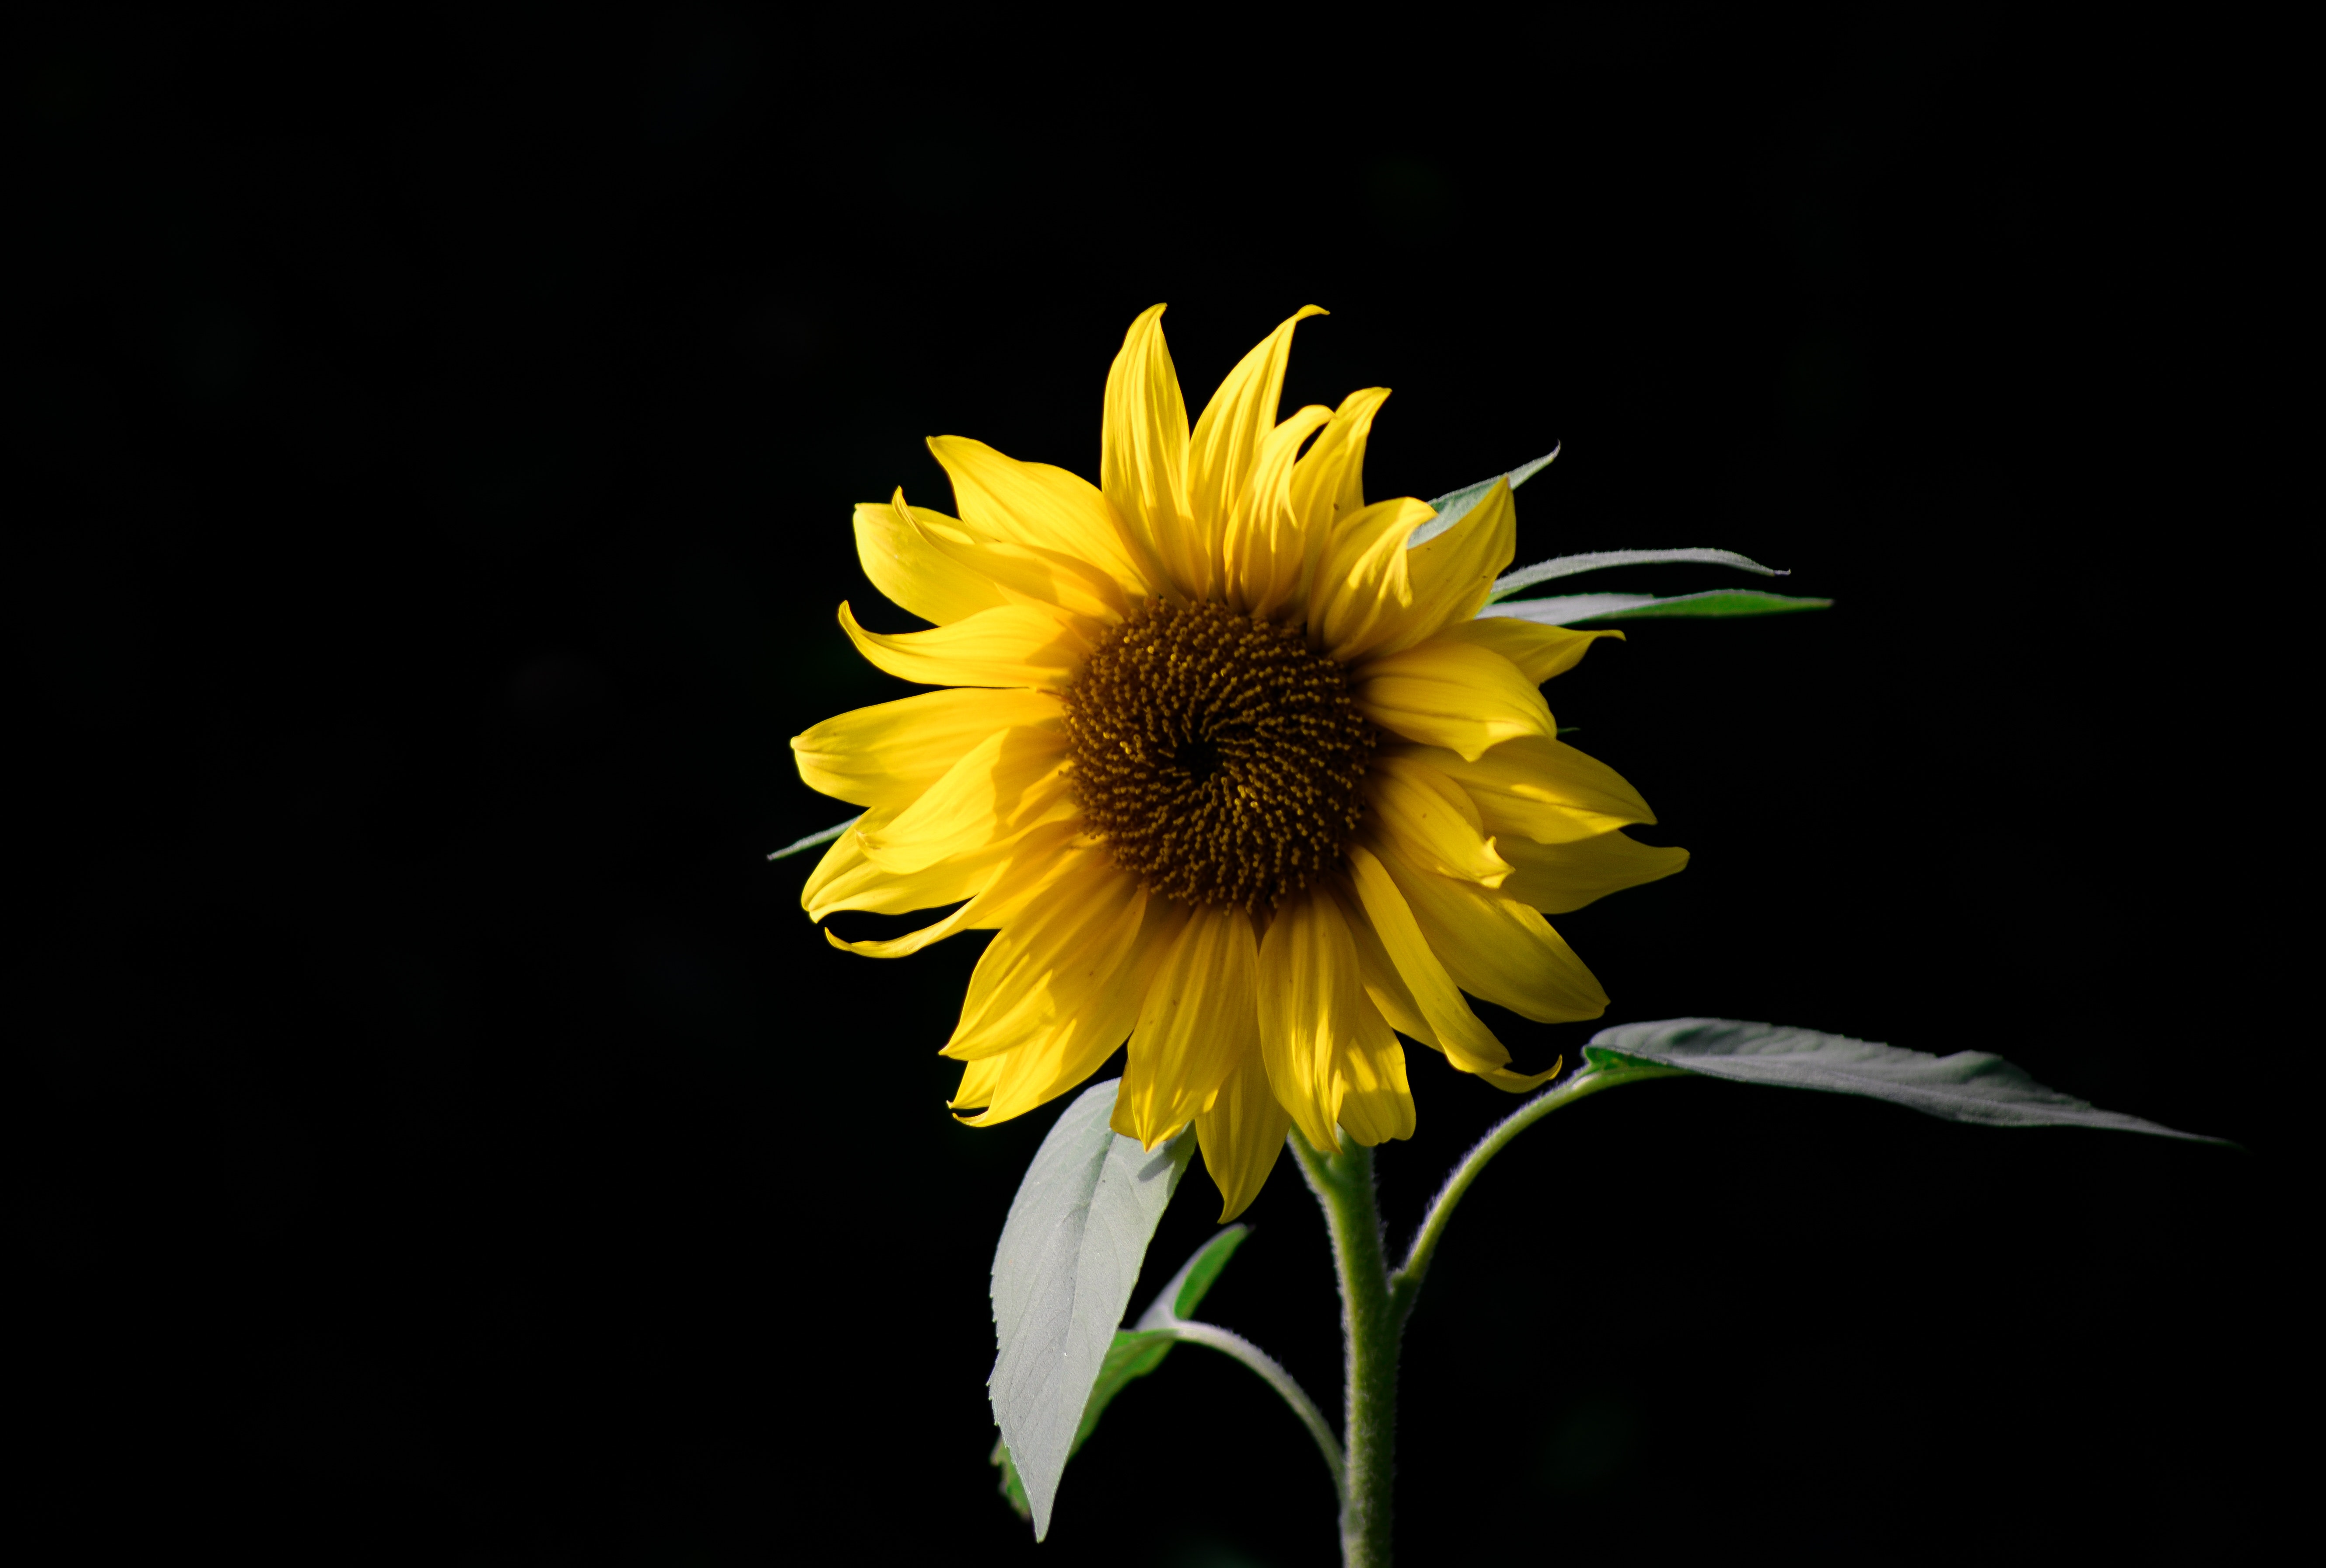 Our Pictures Of Sunflowers Without Registration All Are High Quality And Can Be Used For Your Website Blog Or Article